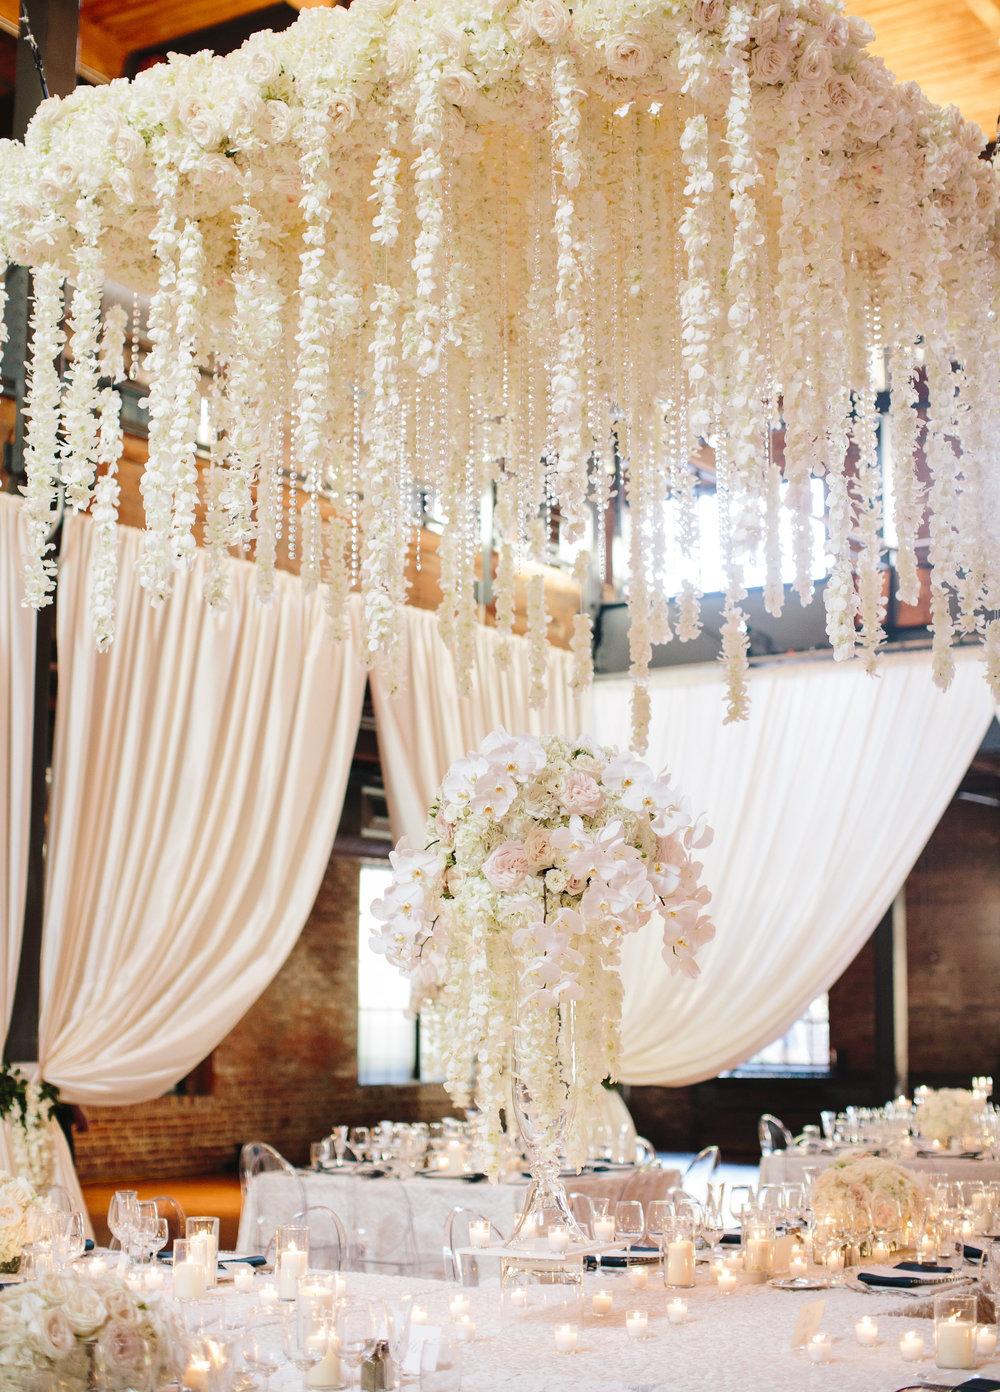 Stunning white floral cascade overhang over head table